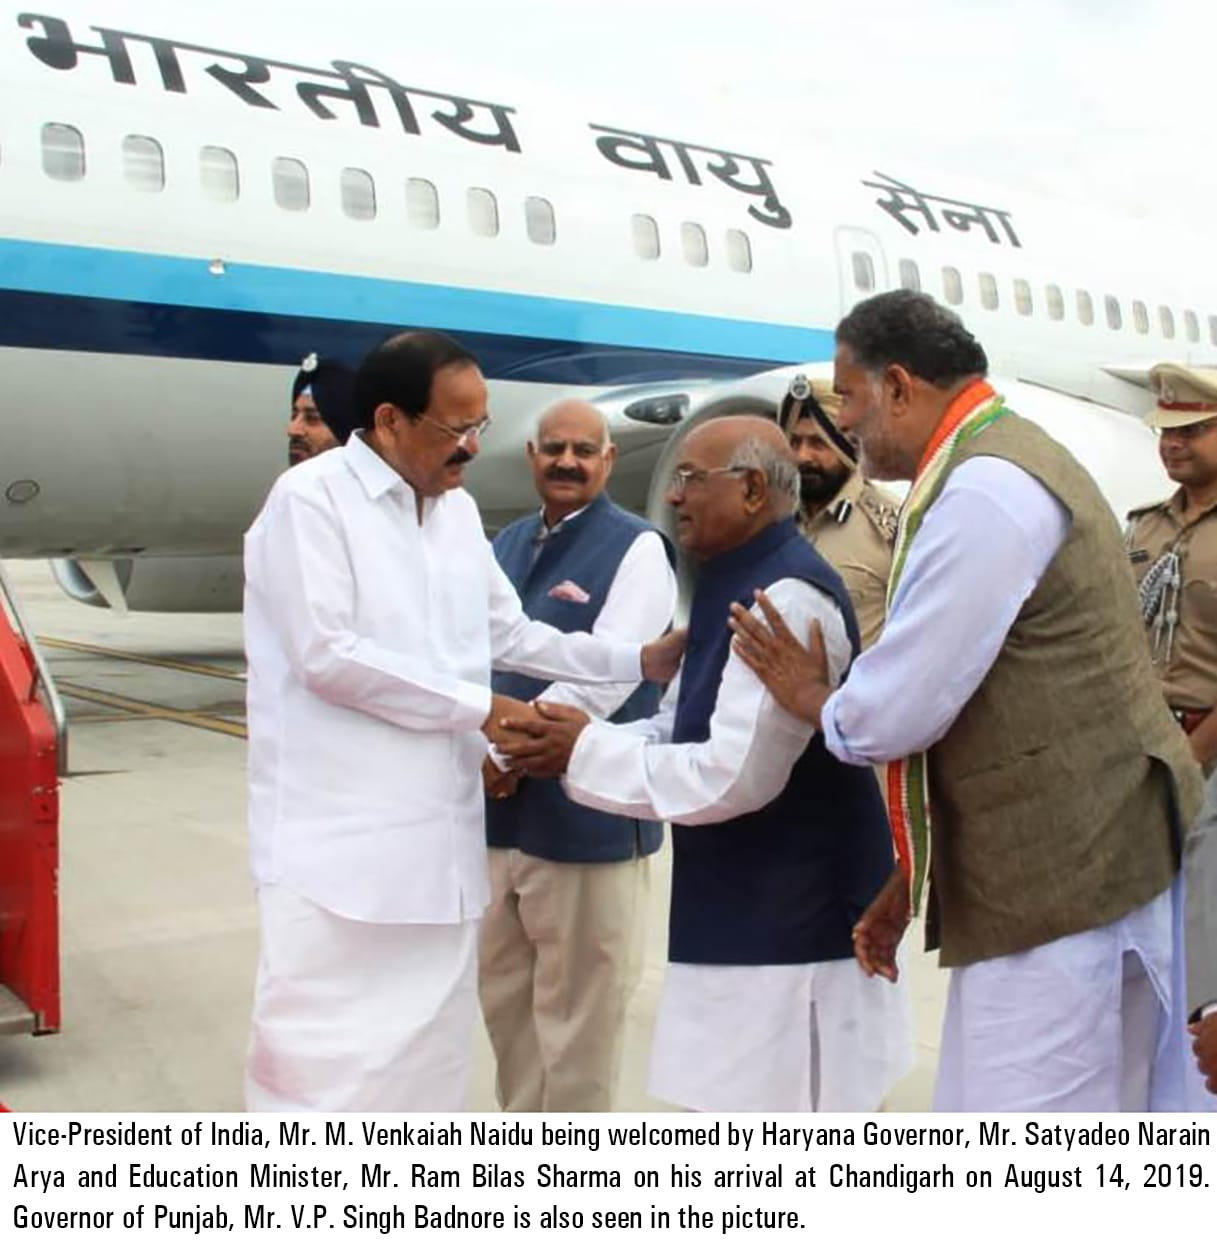 Vice President of India being welcomed by Governor of Haryana